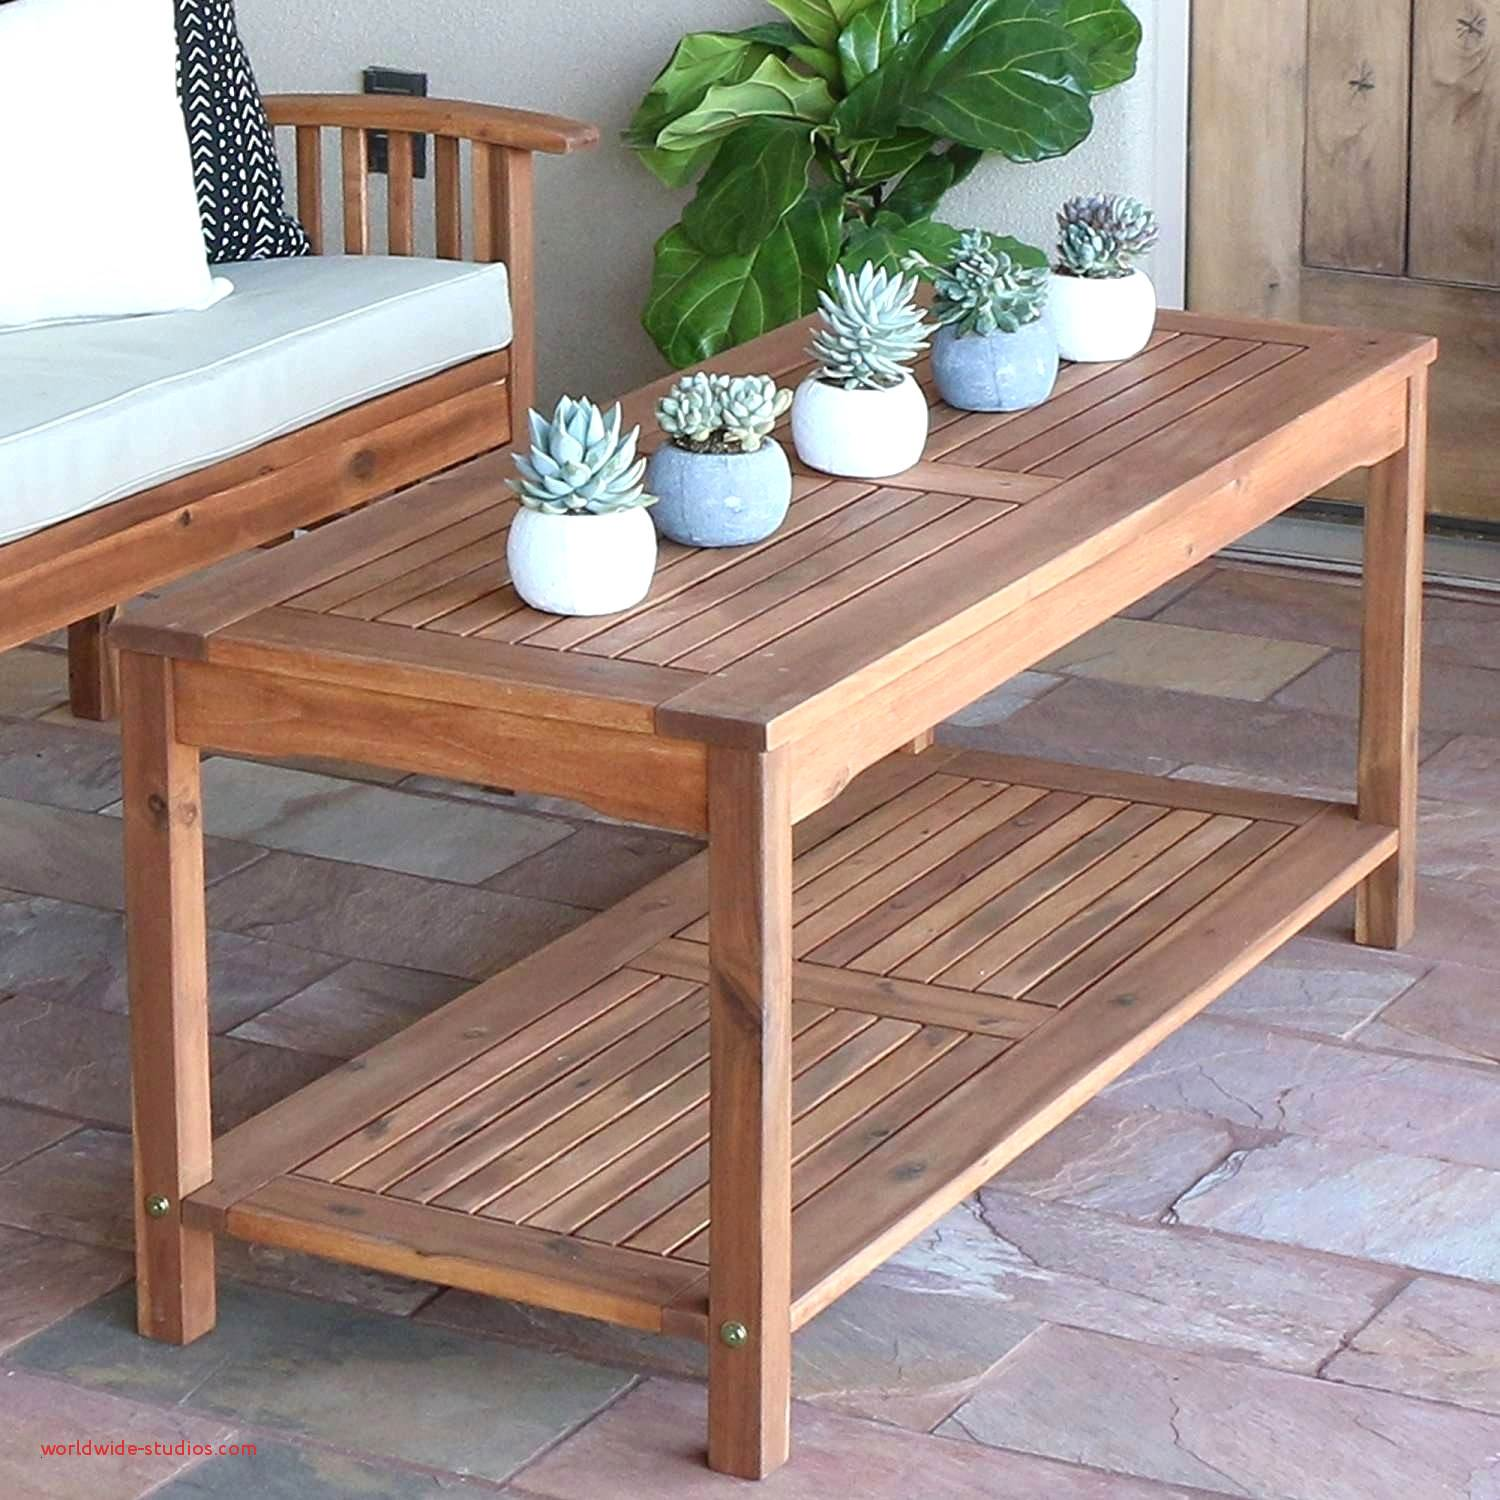 outdoor trestle table plans emmafreeman dining outstanding free top result farmhouse diy kit lovely unique kitchen tables rustic console small round acrylic desk square fold